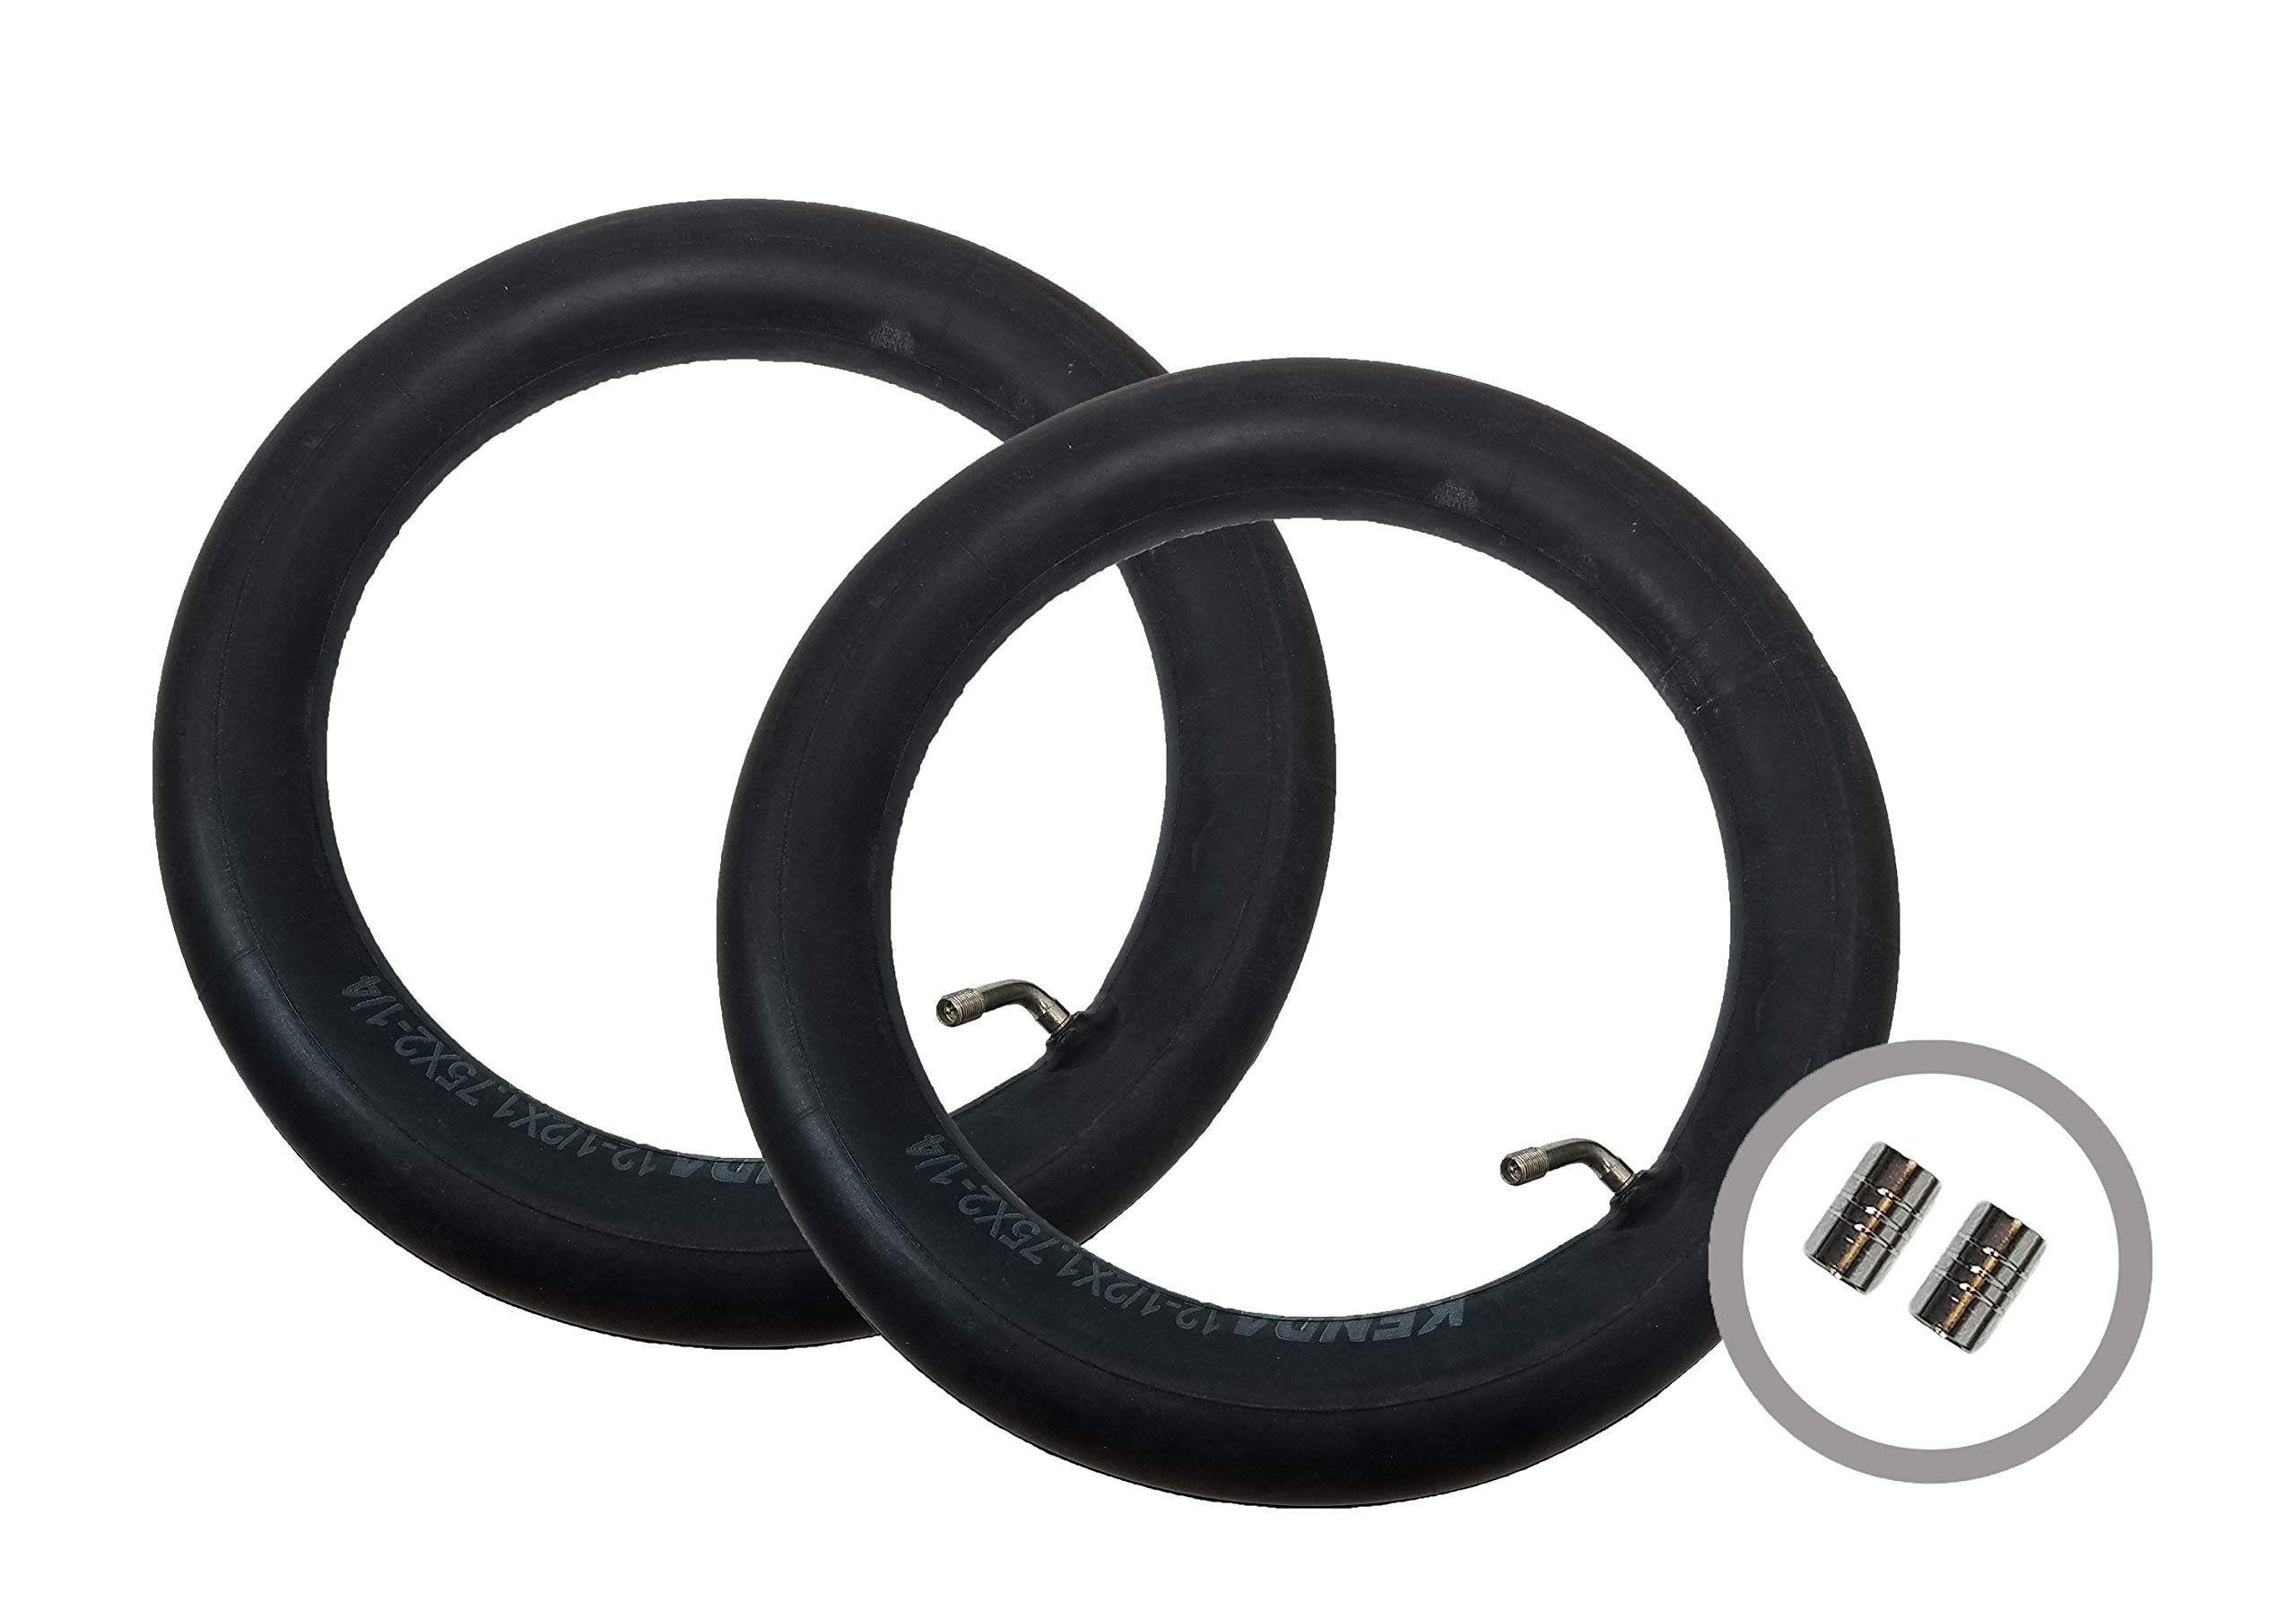 2 x JEEP LIBERTY Stroller Pushchair Inner Tubes 12 1/2'' - 45º Bent/Angled Valve + FREE Shipping + FREE Upgraded Skyscape Metal Valve Caps (Worth $4.99)